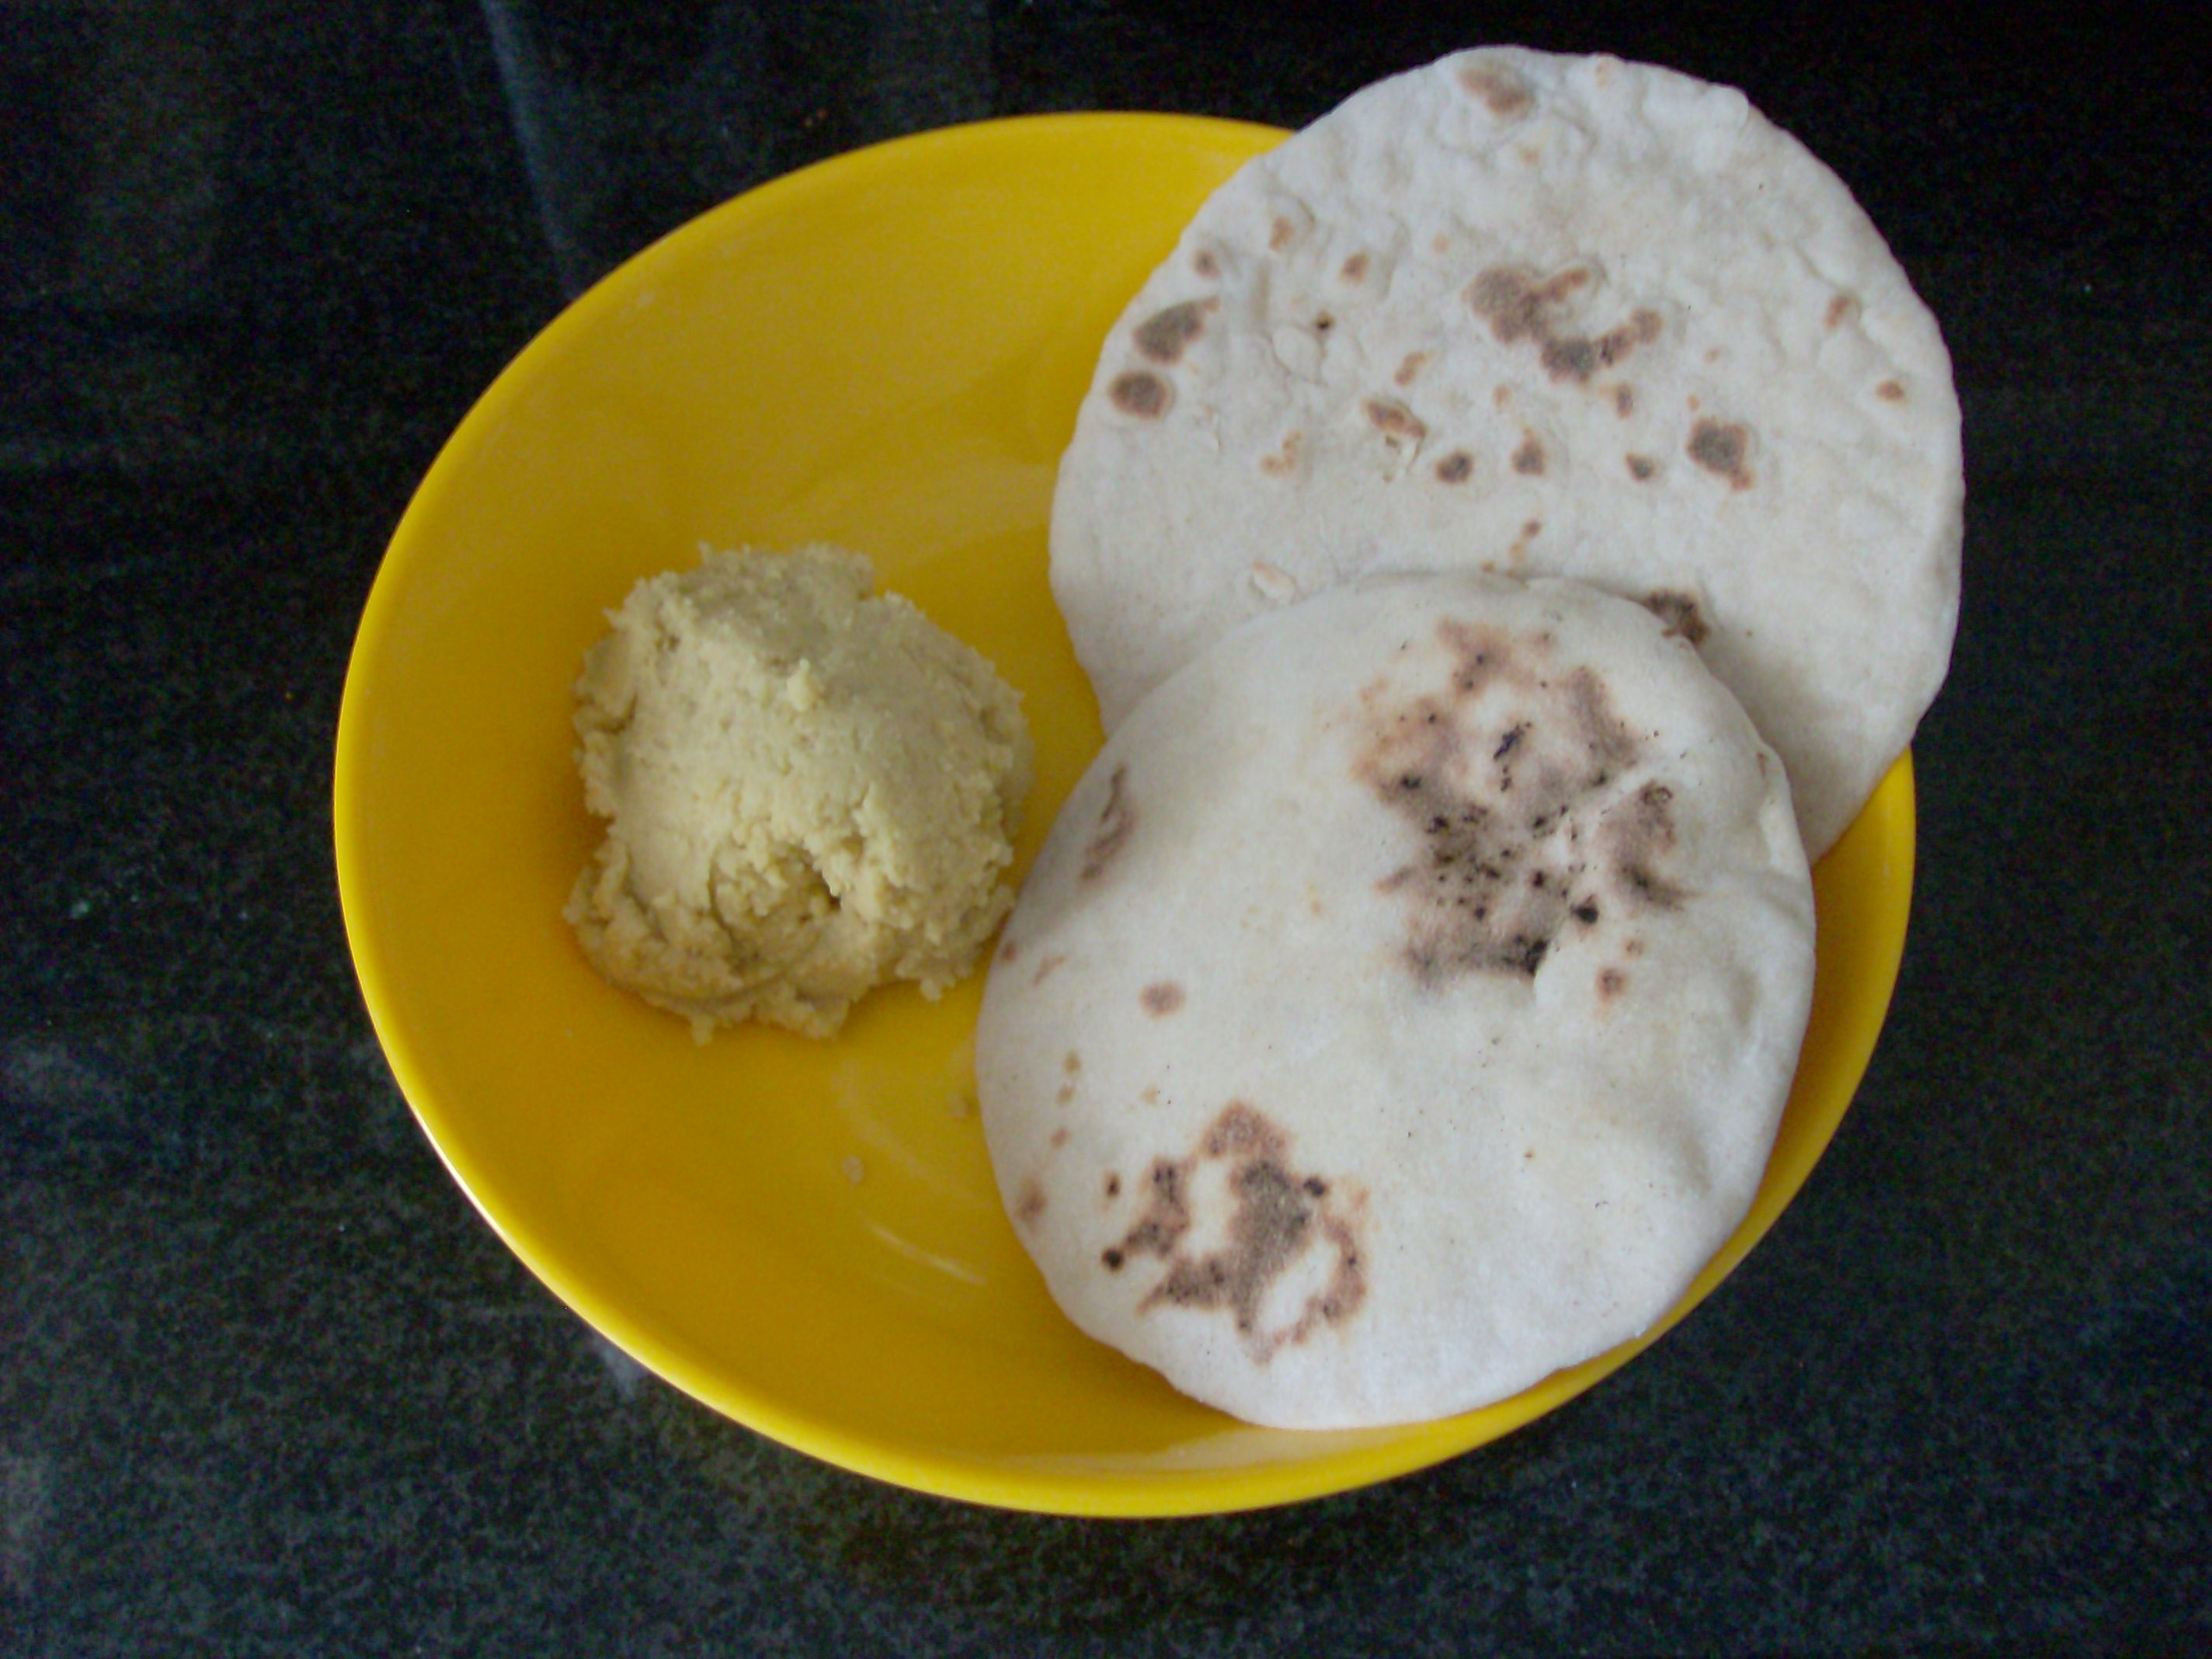 Homemade Hummus and Pita Bread Frugal Foreigner